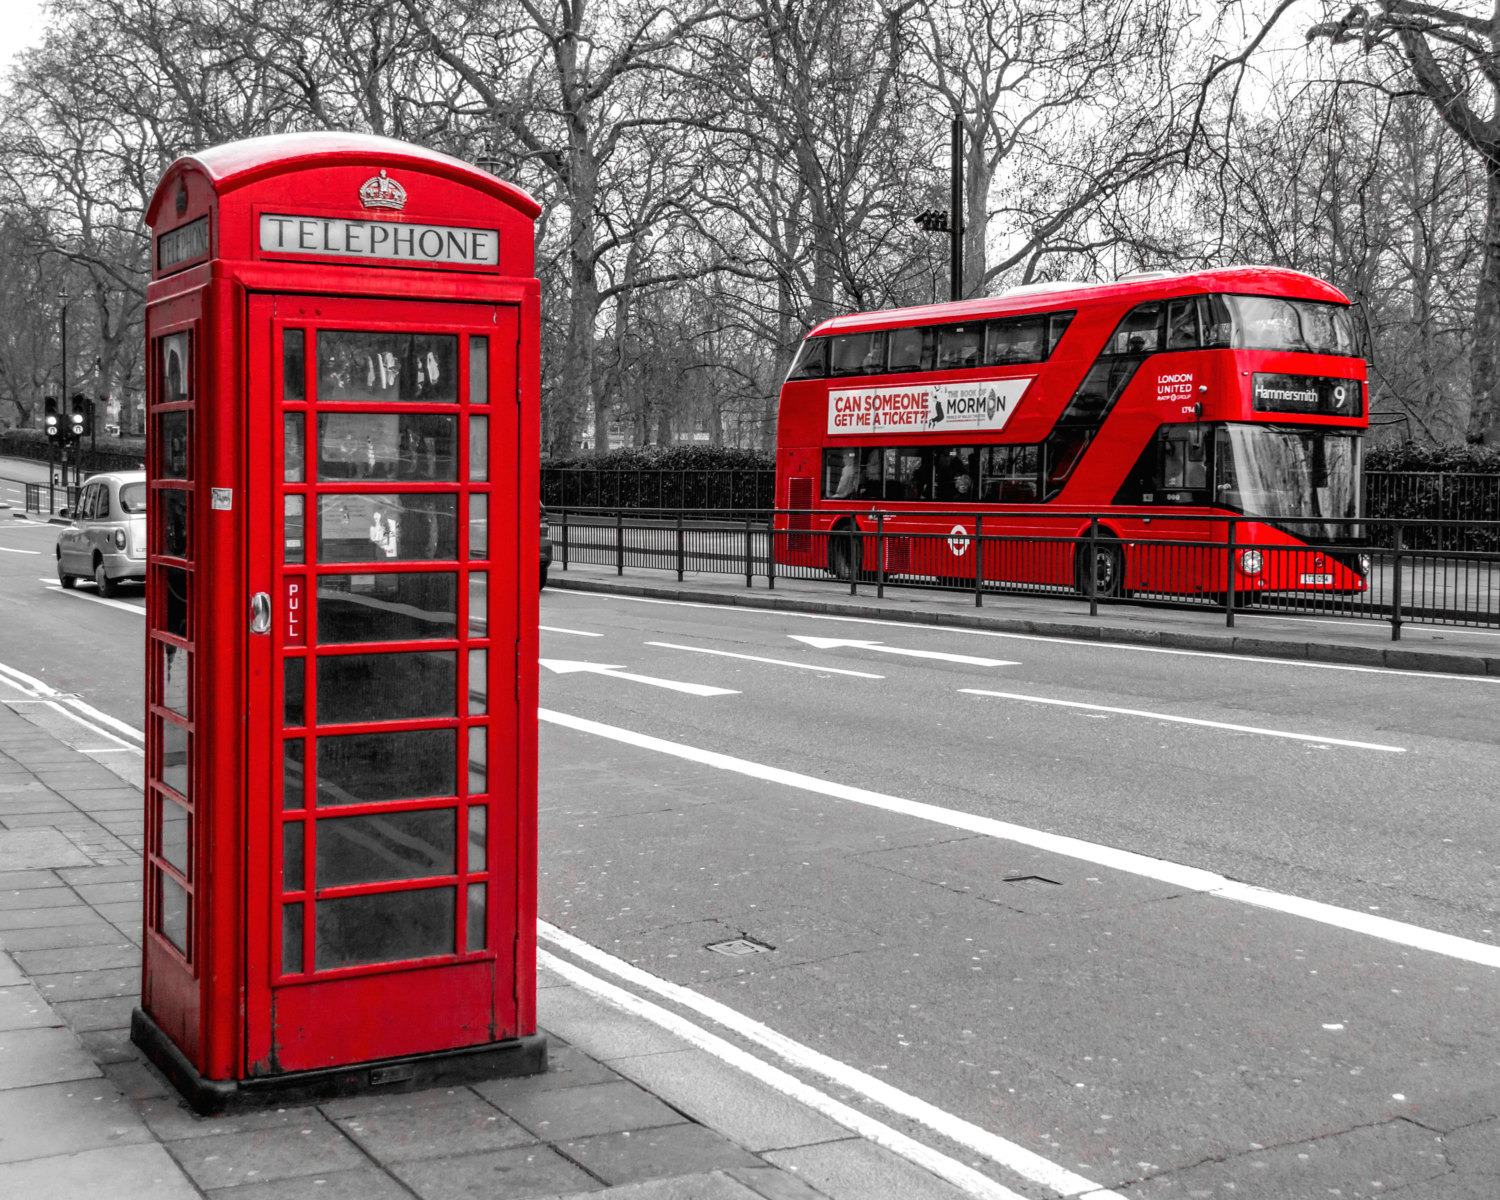 Telephone Booth clipart london double decker bus Booth Booth Red London Etsy